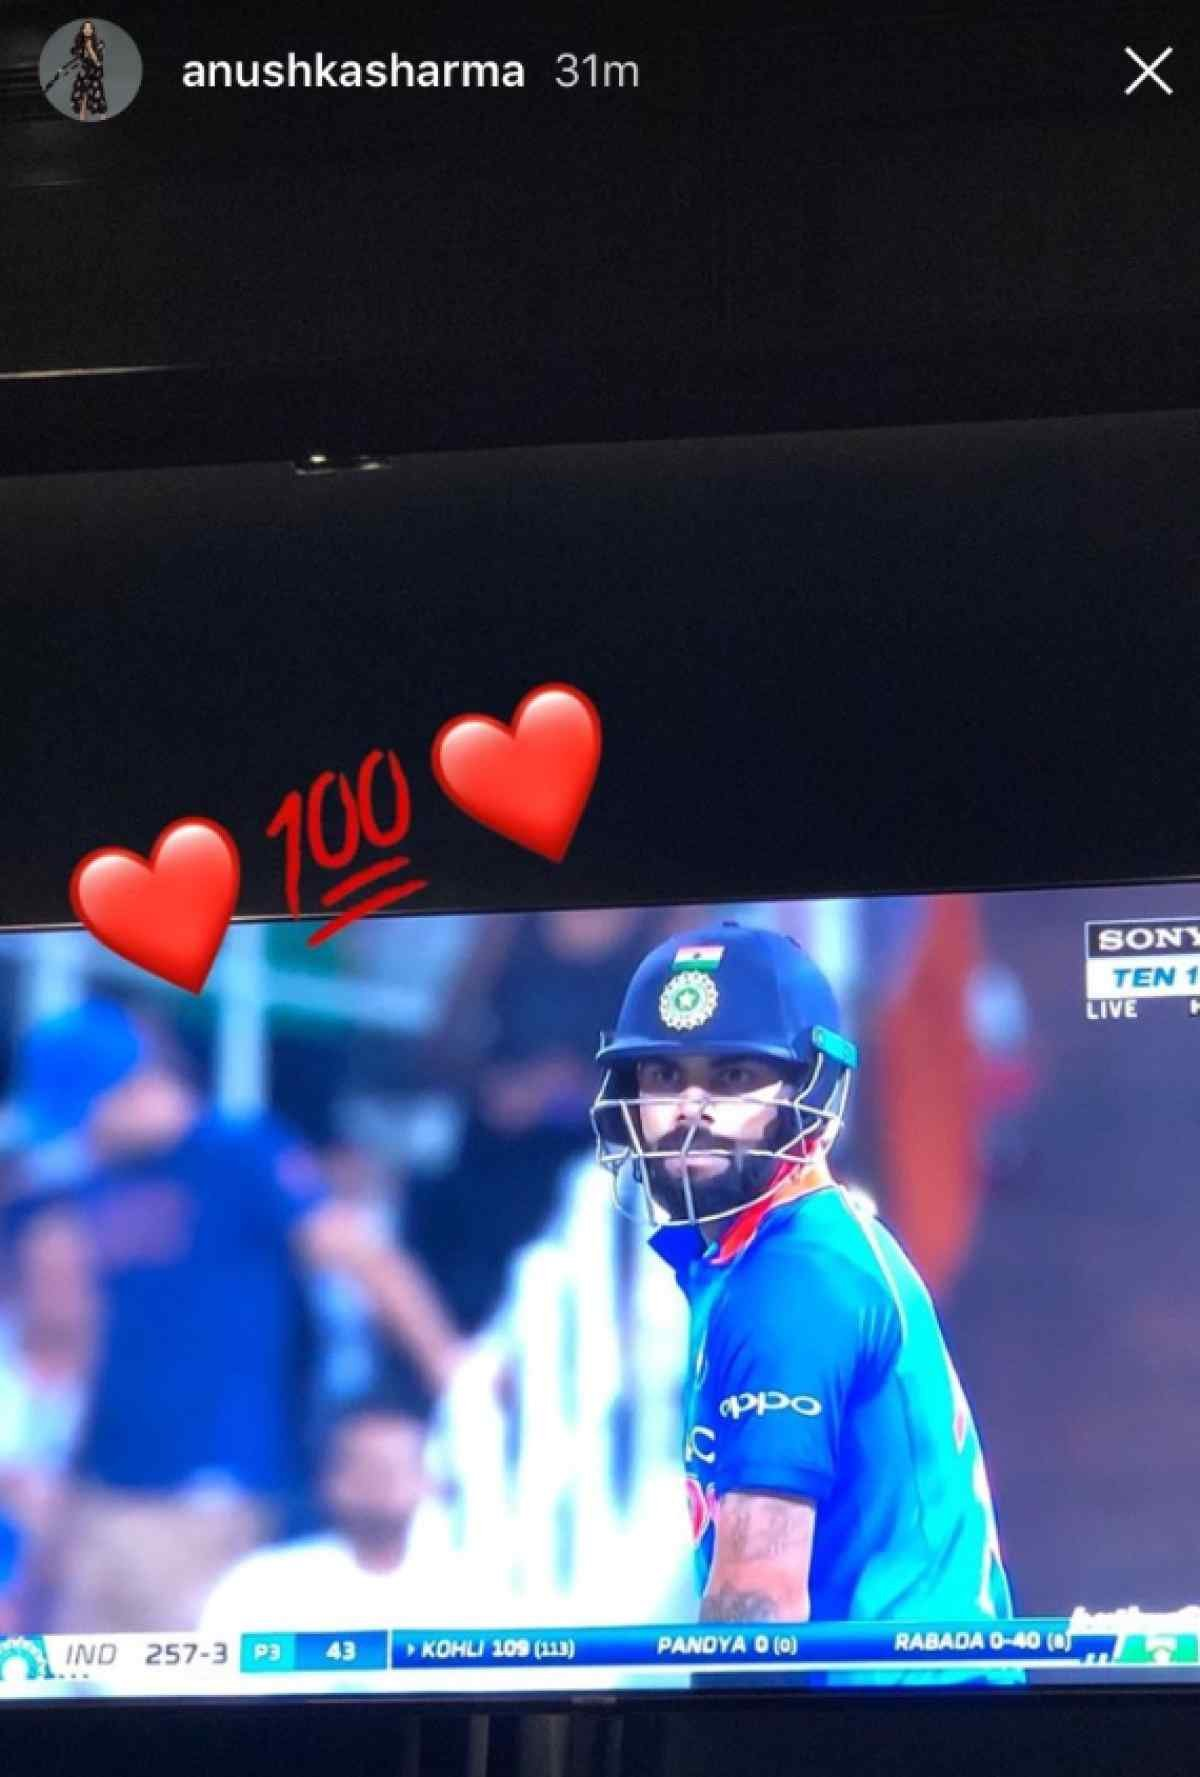 As Virat Led India To Victory Yesterday, Anushka Cheered Him On With